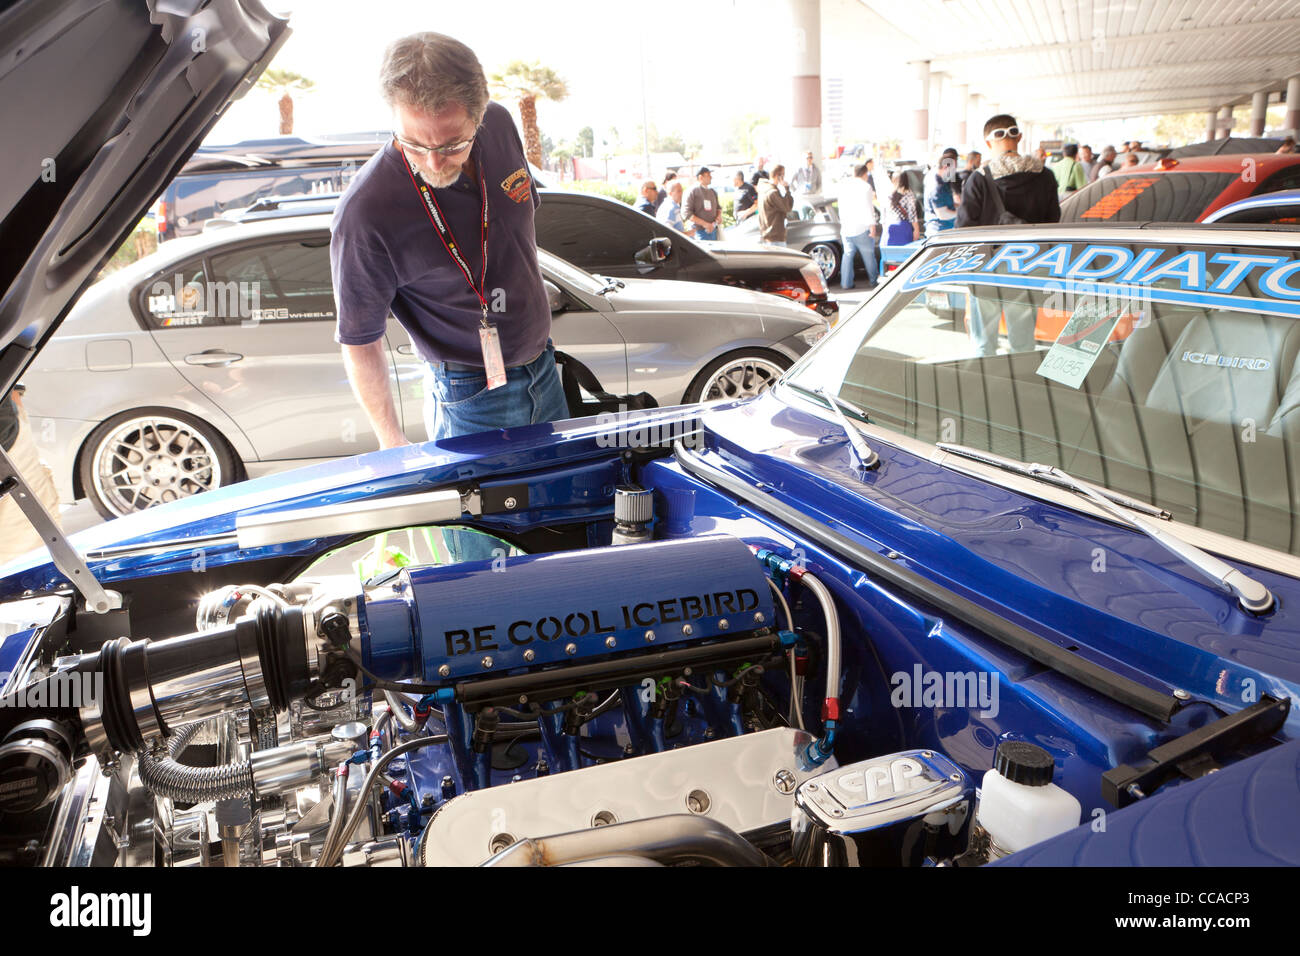 A car enthusiast inspecting a hot rod engine at car show - Stock Image